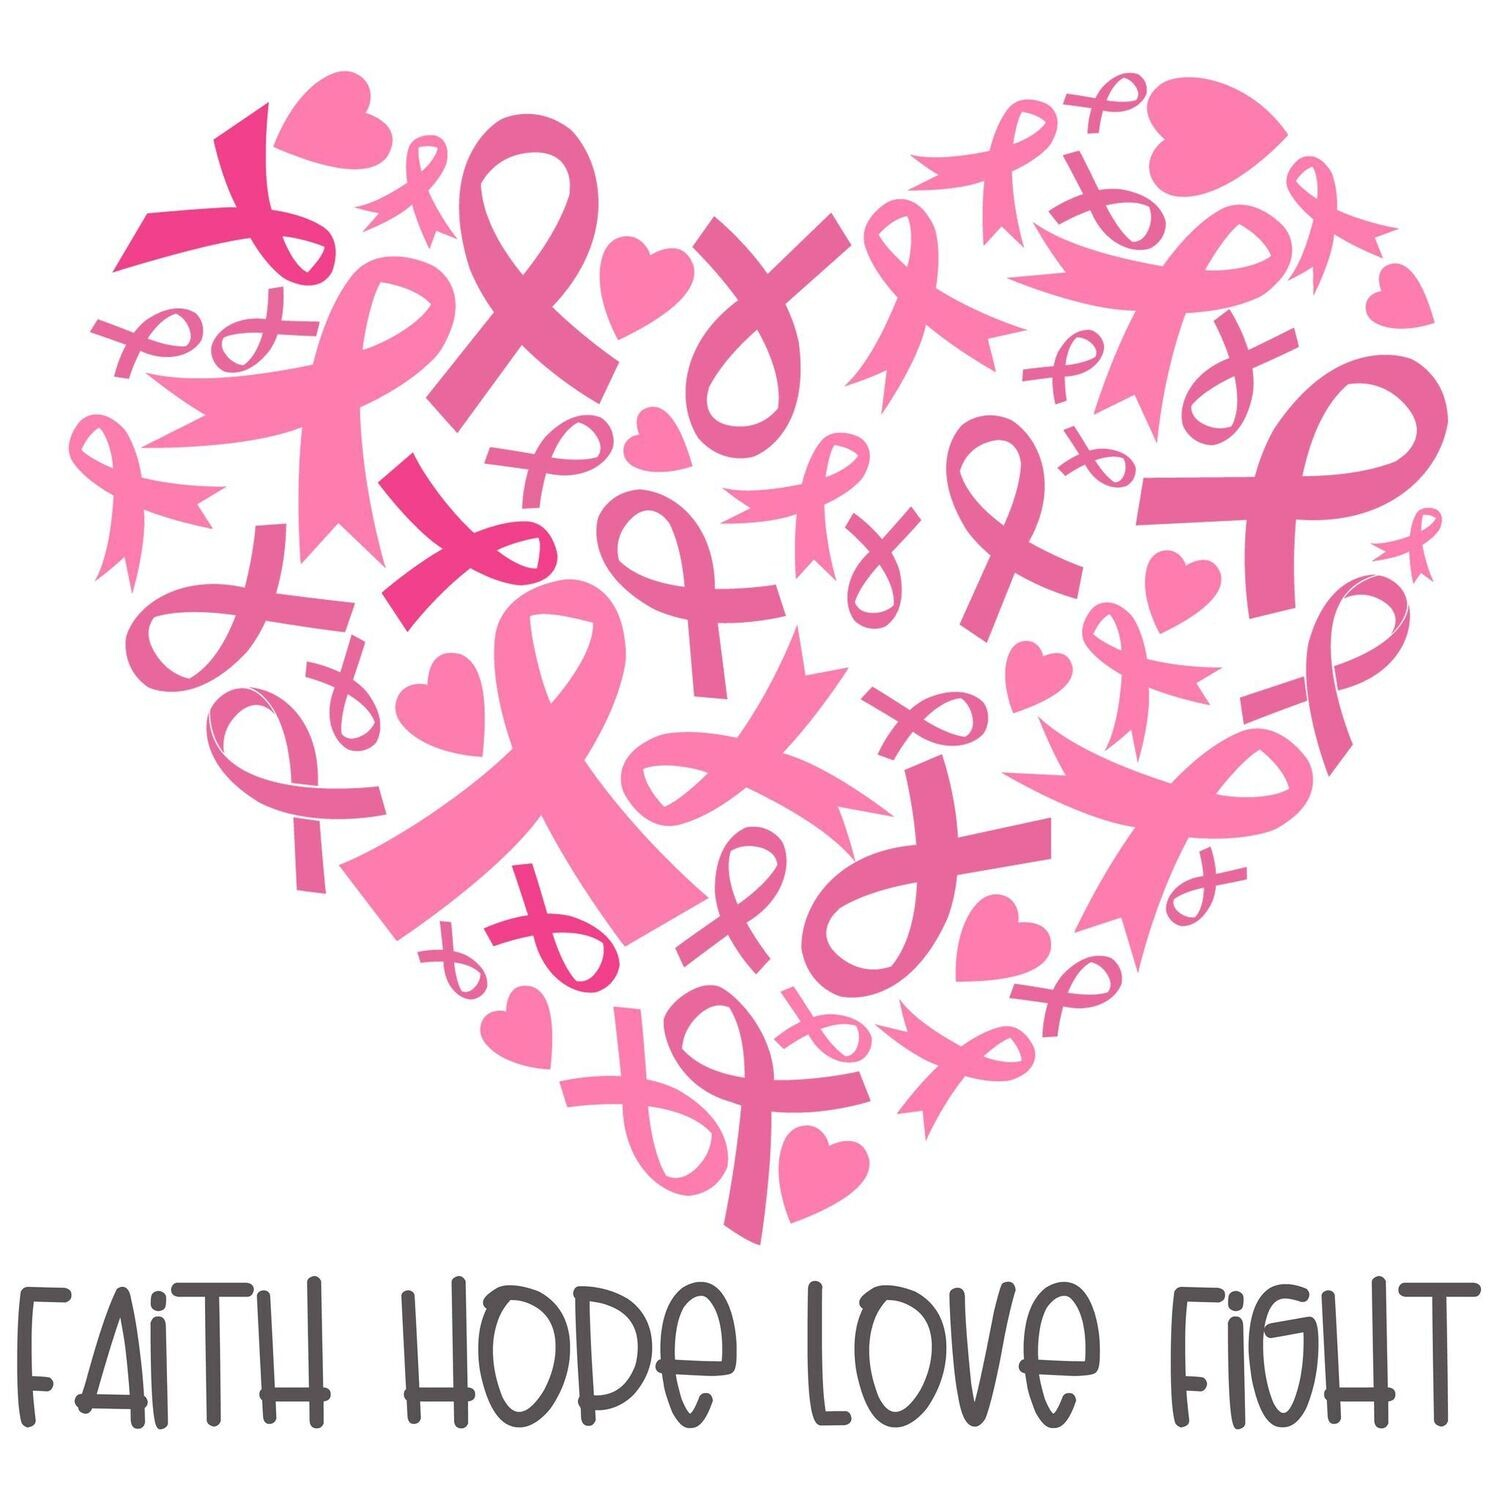 FAITH HOPE LOVE FIGHT by Amanda (exclusive to Gem It) - 40 x 40cm Full Drill (Square), Diamond Painting Kit - Currently in stock